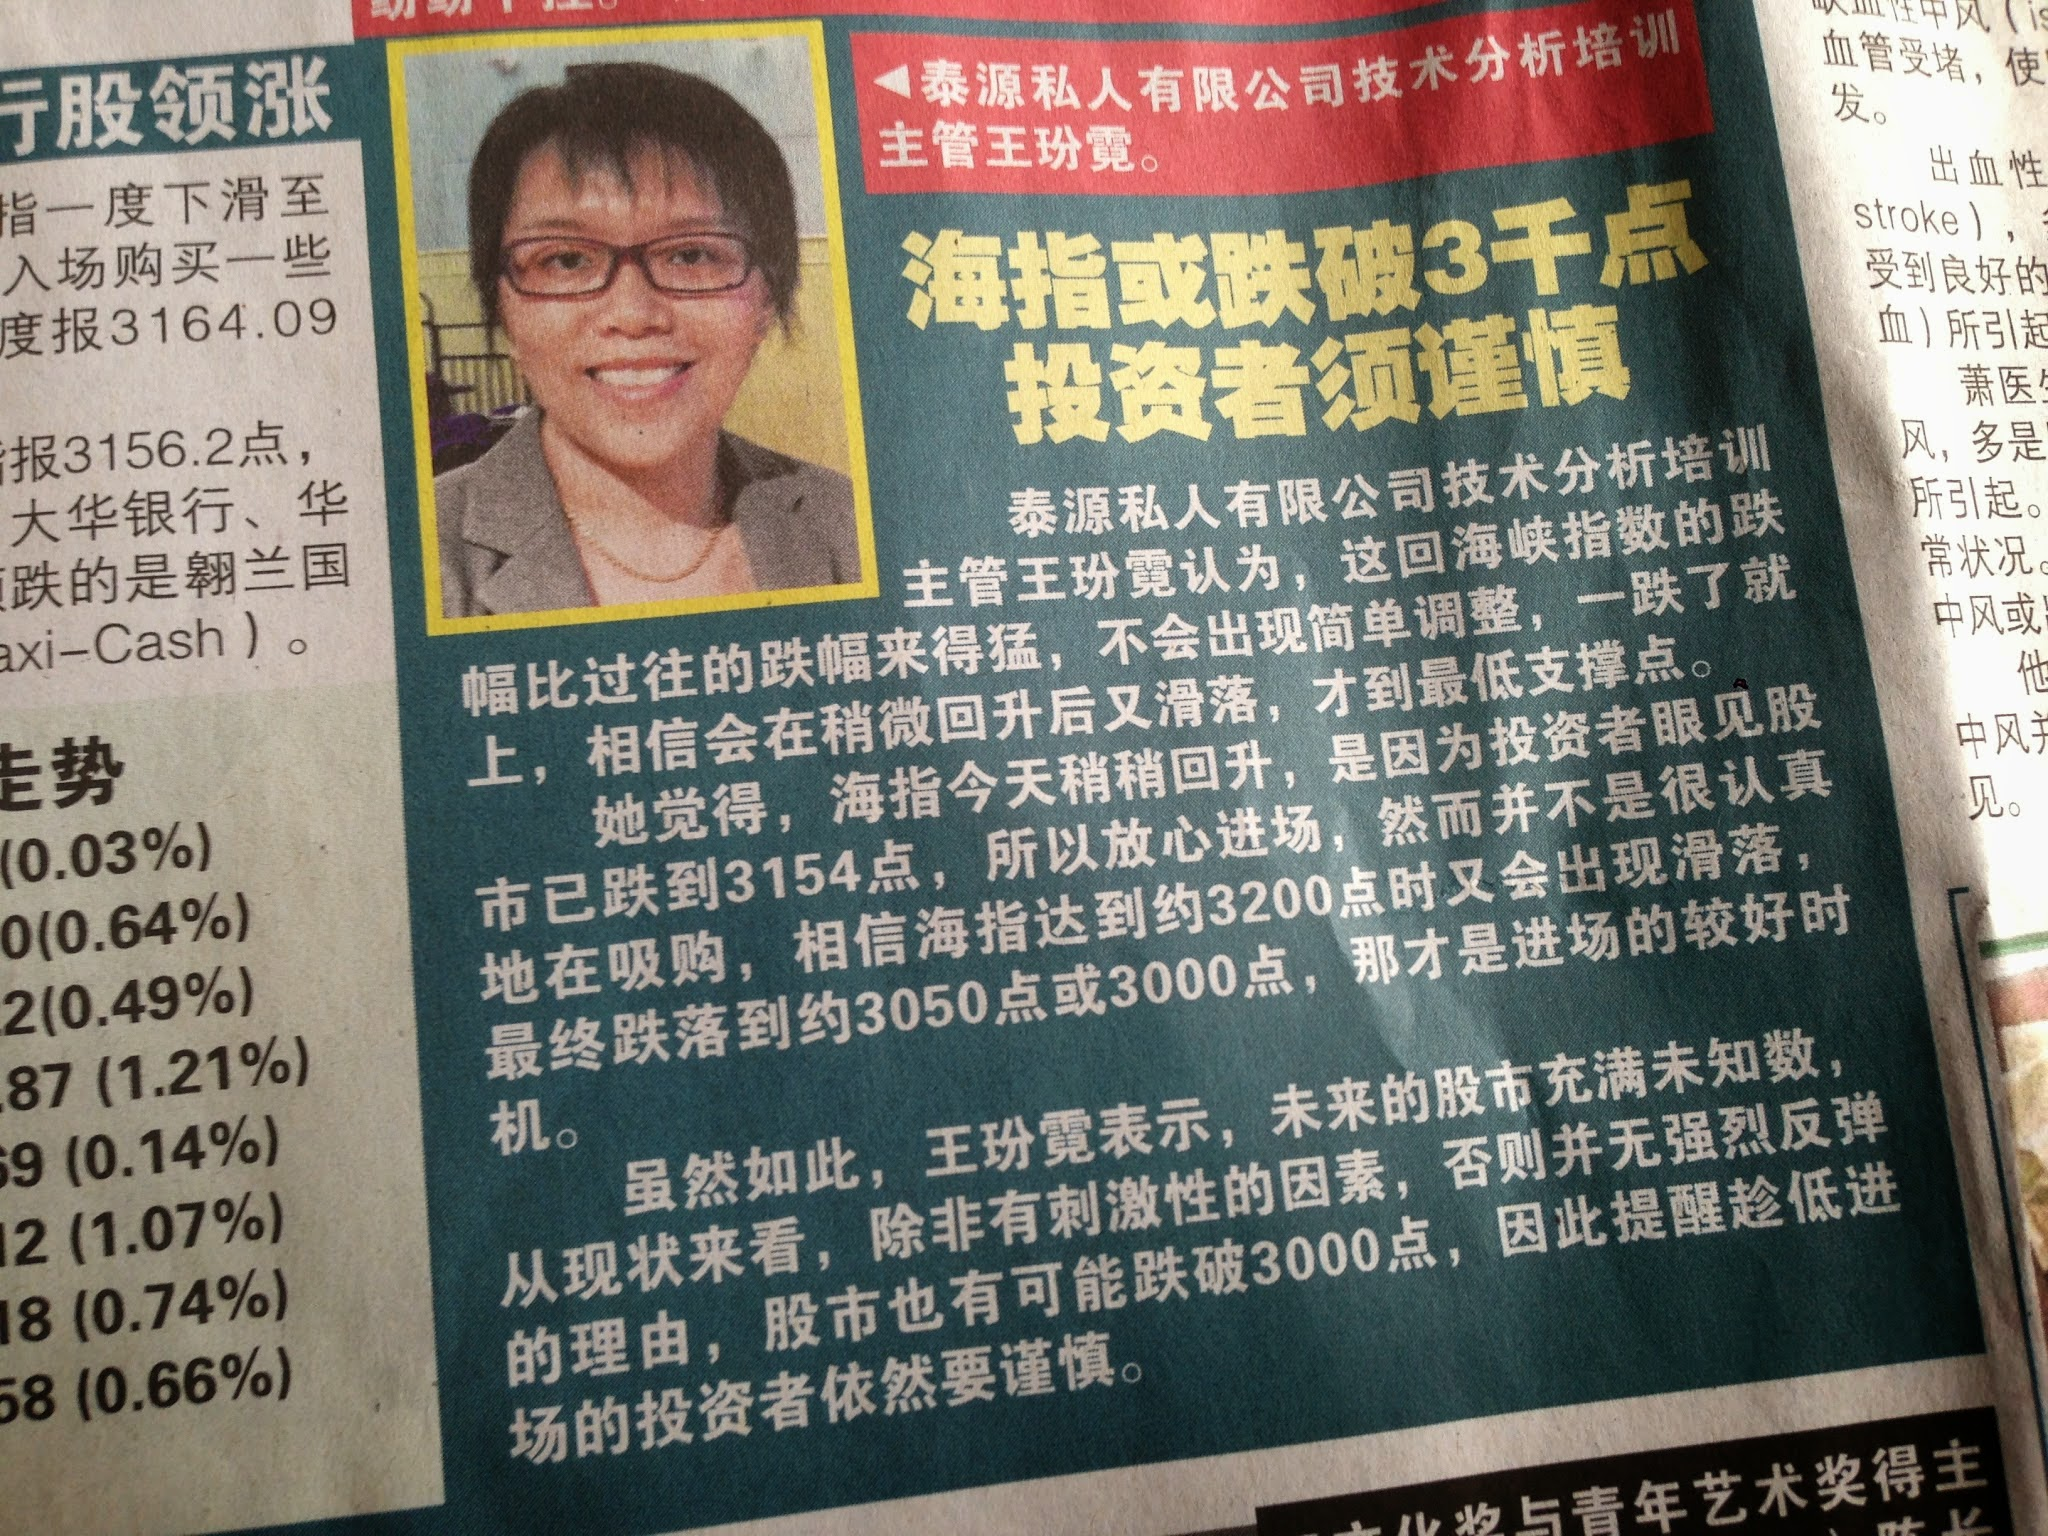 Photo: 17 October 2014 interview by Shin Min Daily. Chief Trainer Binni Ong believes that this round of Straits Times Index correction is more aggressive than previous and that there may be a brief rally followed by another slide before reaching support.  She believes that a recovery in the index may be short-lived and that support will be reached after STI hits 3200 and falls again.  泰源技术分析培训主管王玢霓:海峡指数的跌幅比过去猛,不会出现简单调整。相信海指到了3200点就会花落,最终到3000-3050点,才是较好的进场时机。  未来的股市未知非常多,除有刺激因素,没有强烈反弹的理由。如果海指跌破3000,股民须谨慎。